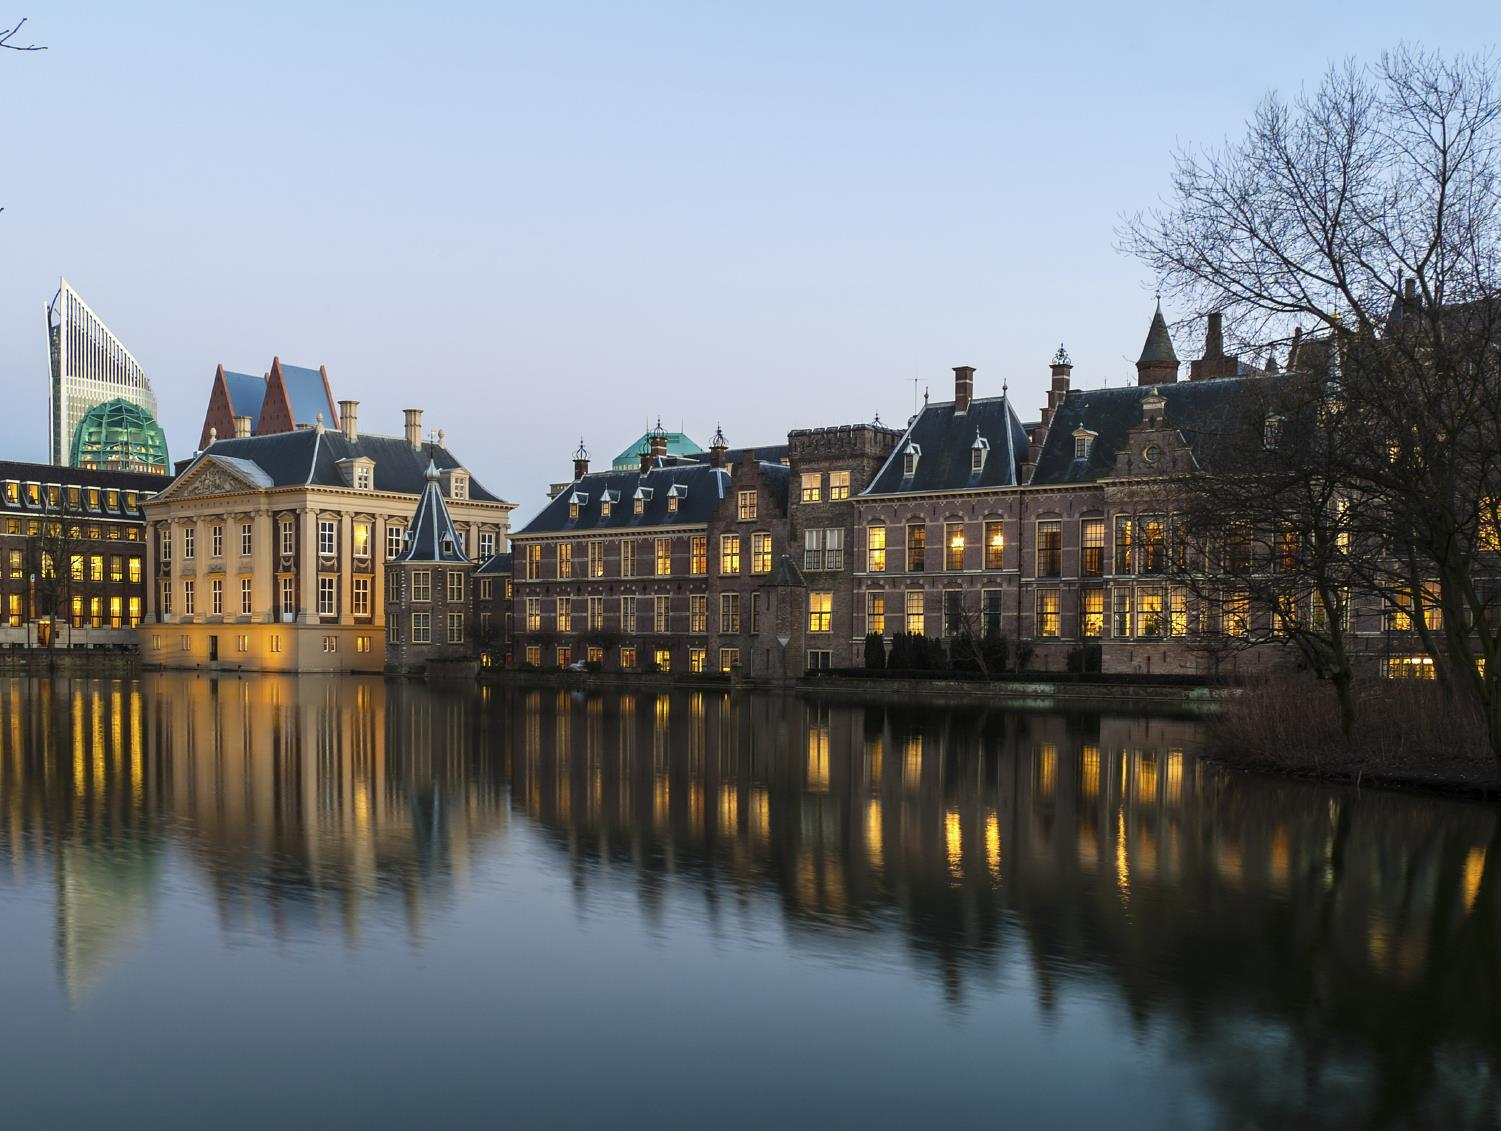 Dutch Parliament buildings in the Hague, the Netherlands